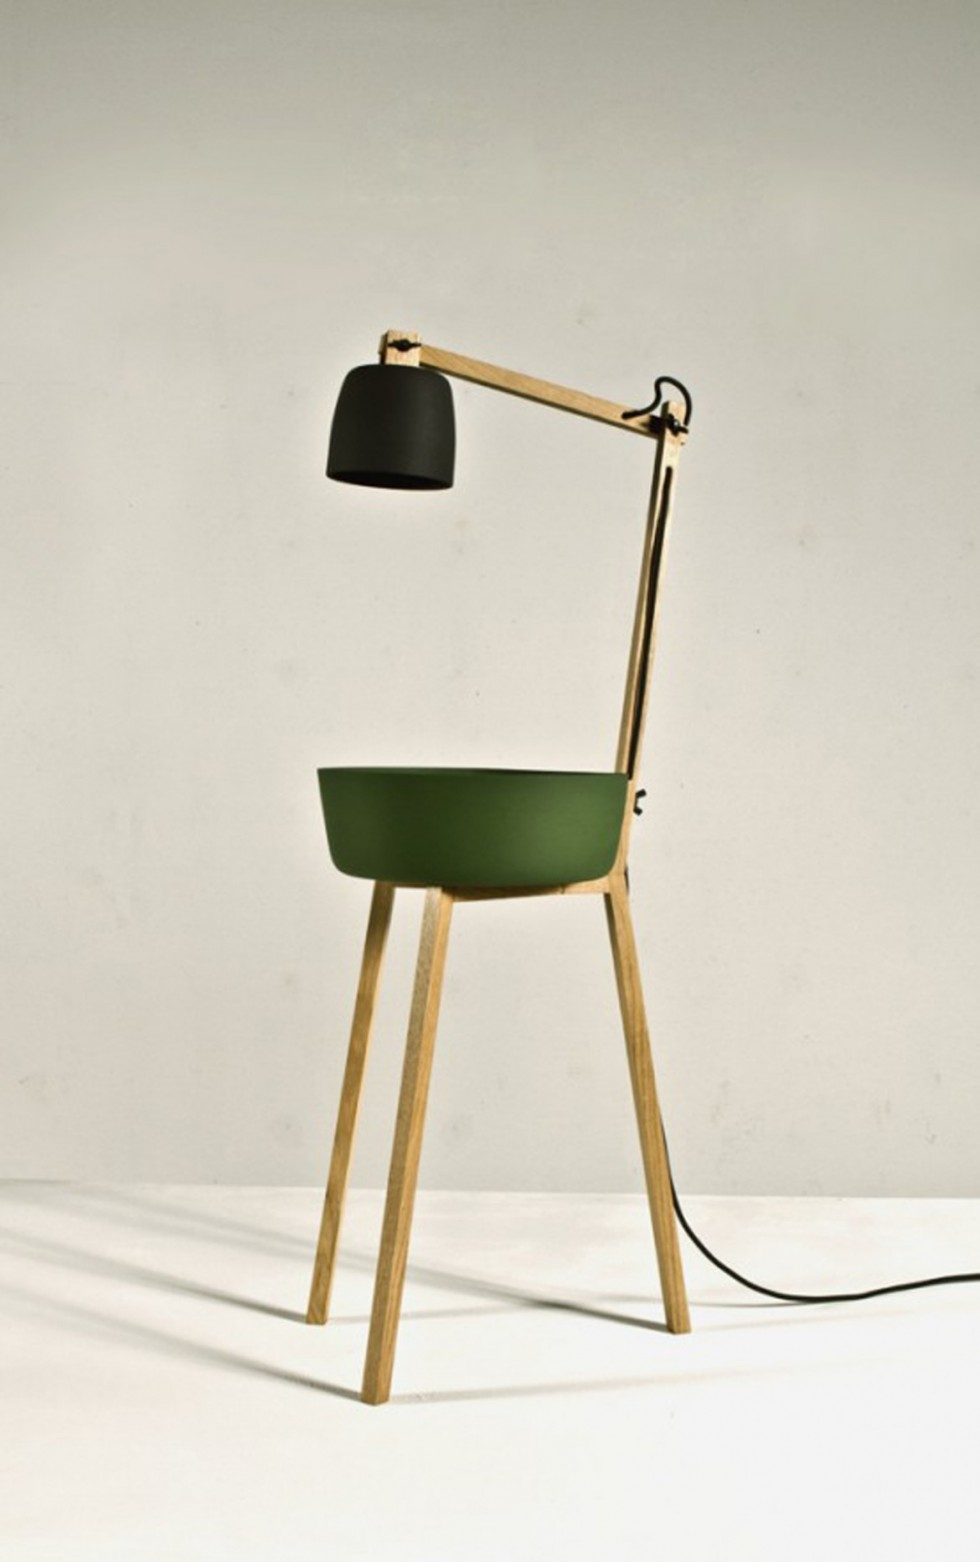 table lamp Contemporary table lamps for a bedroom Contemporary table lamps for a bedroom gold e1458638733660